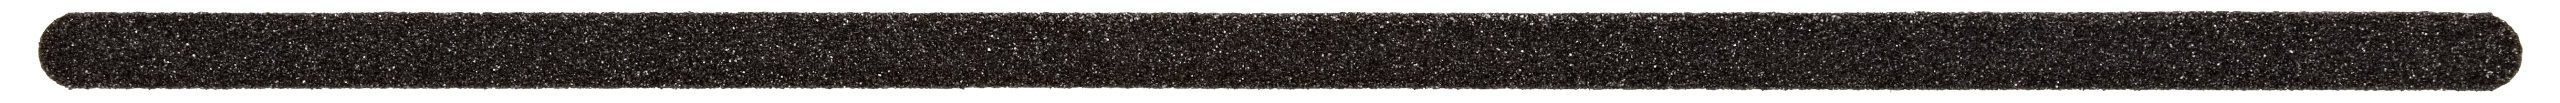 Jessup Safety Track 3200 Heavy Duty Non-Slip High Traction Safety Tape (46-Grit, Black, 0.75-Inch x 24-Inch, Pack of 50)